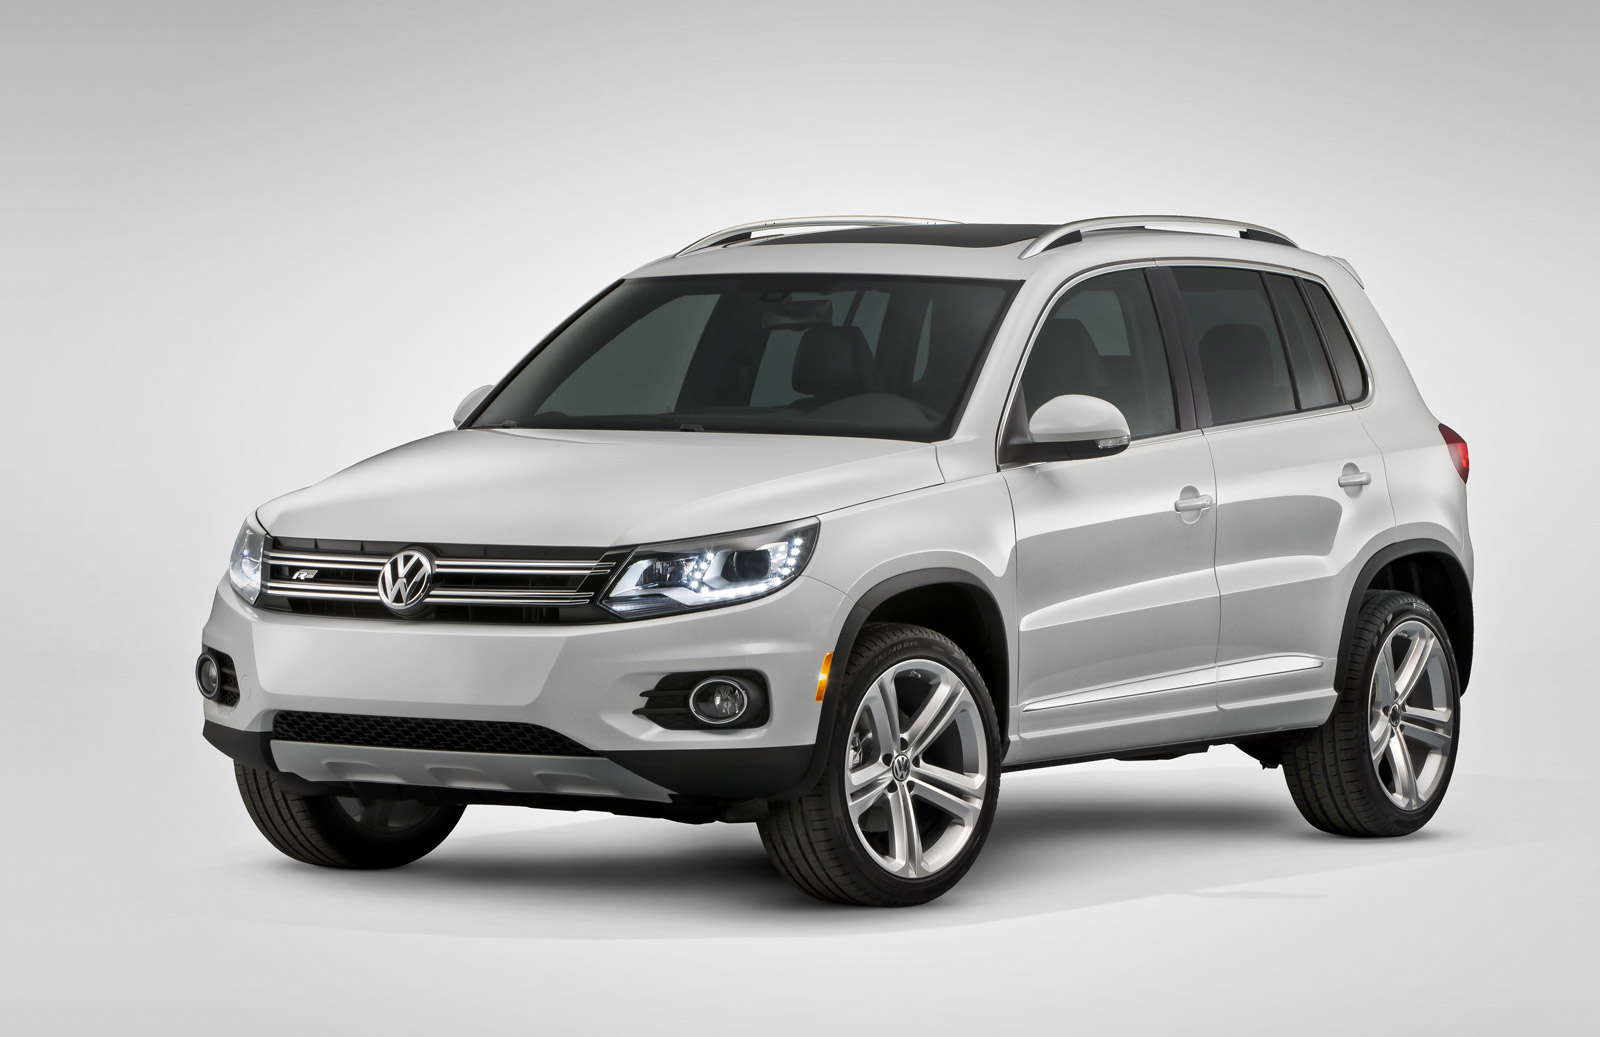 2014 volkswagen tiguan r line 100415066. Black Bedroom Furniture Sets. Home Design Ideas